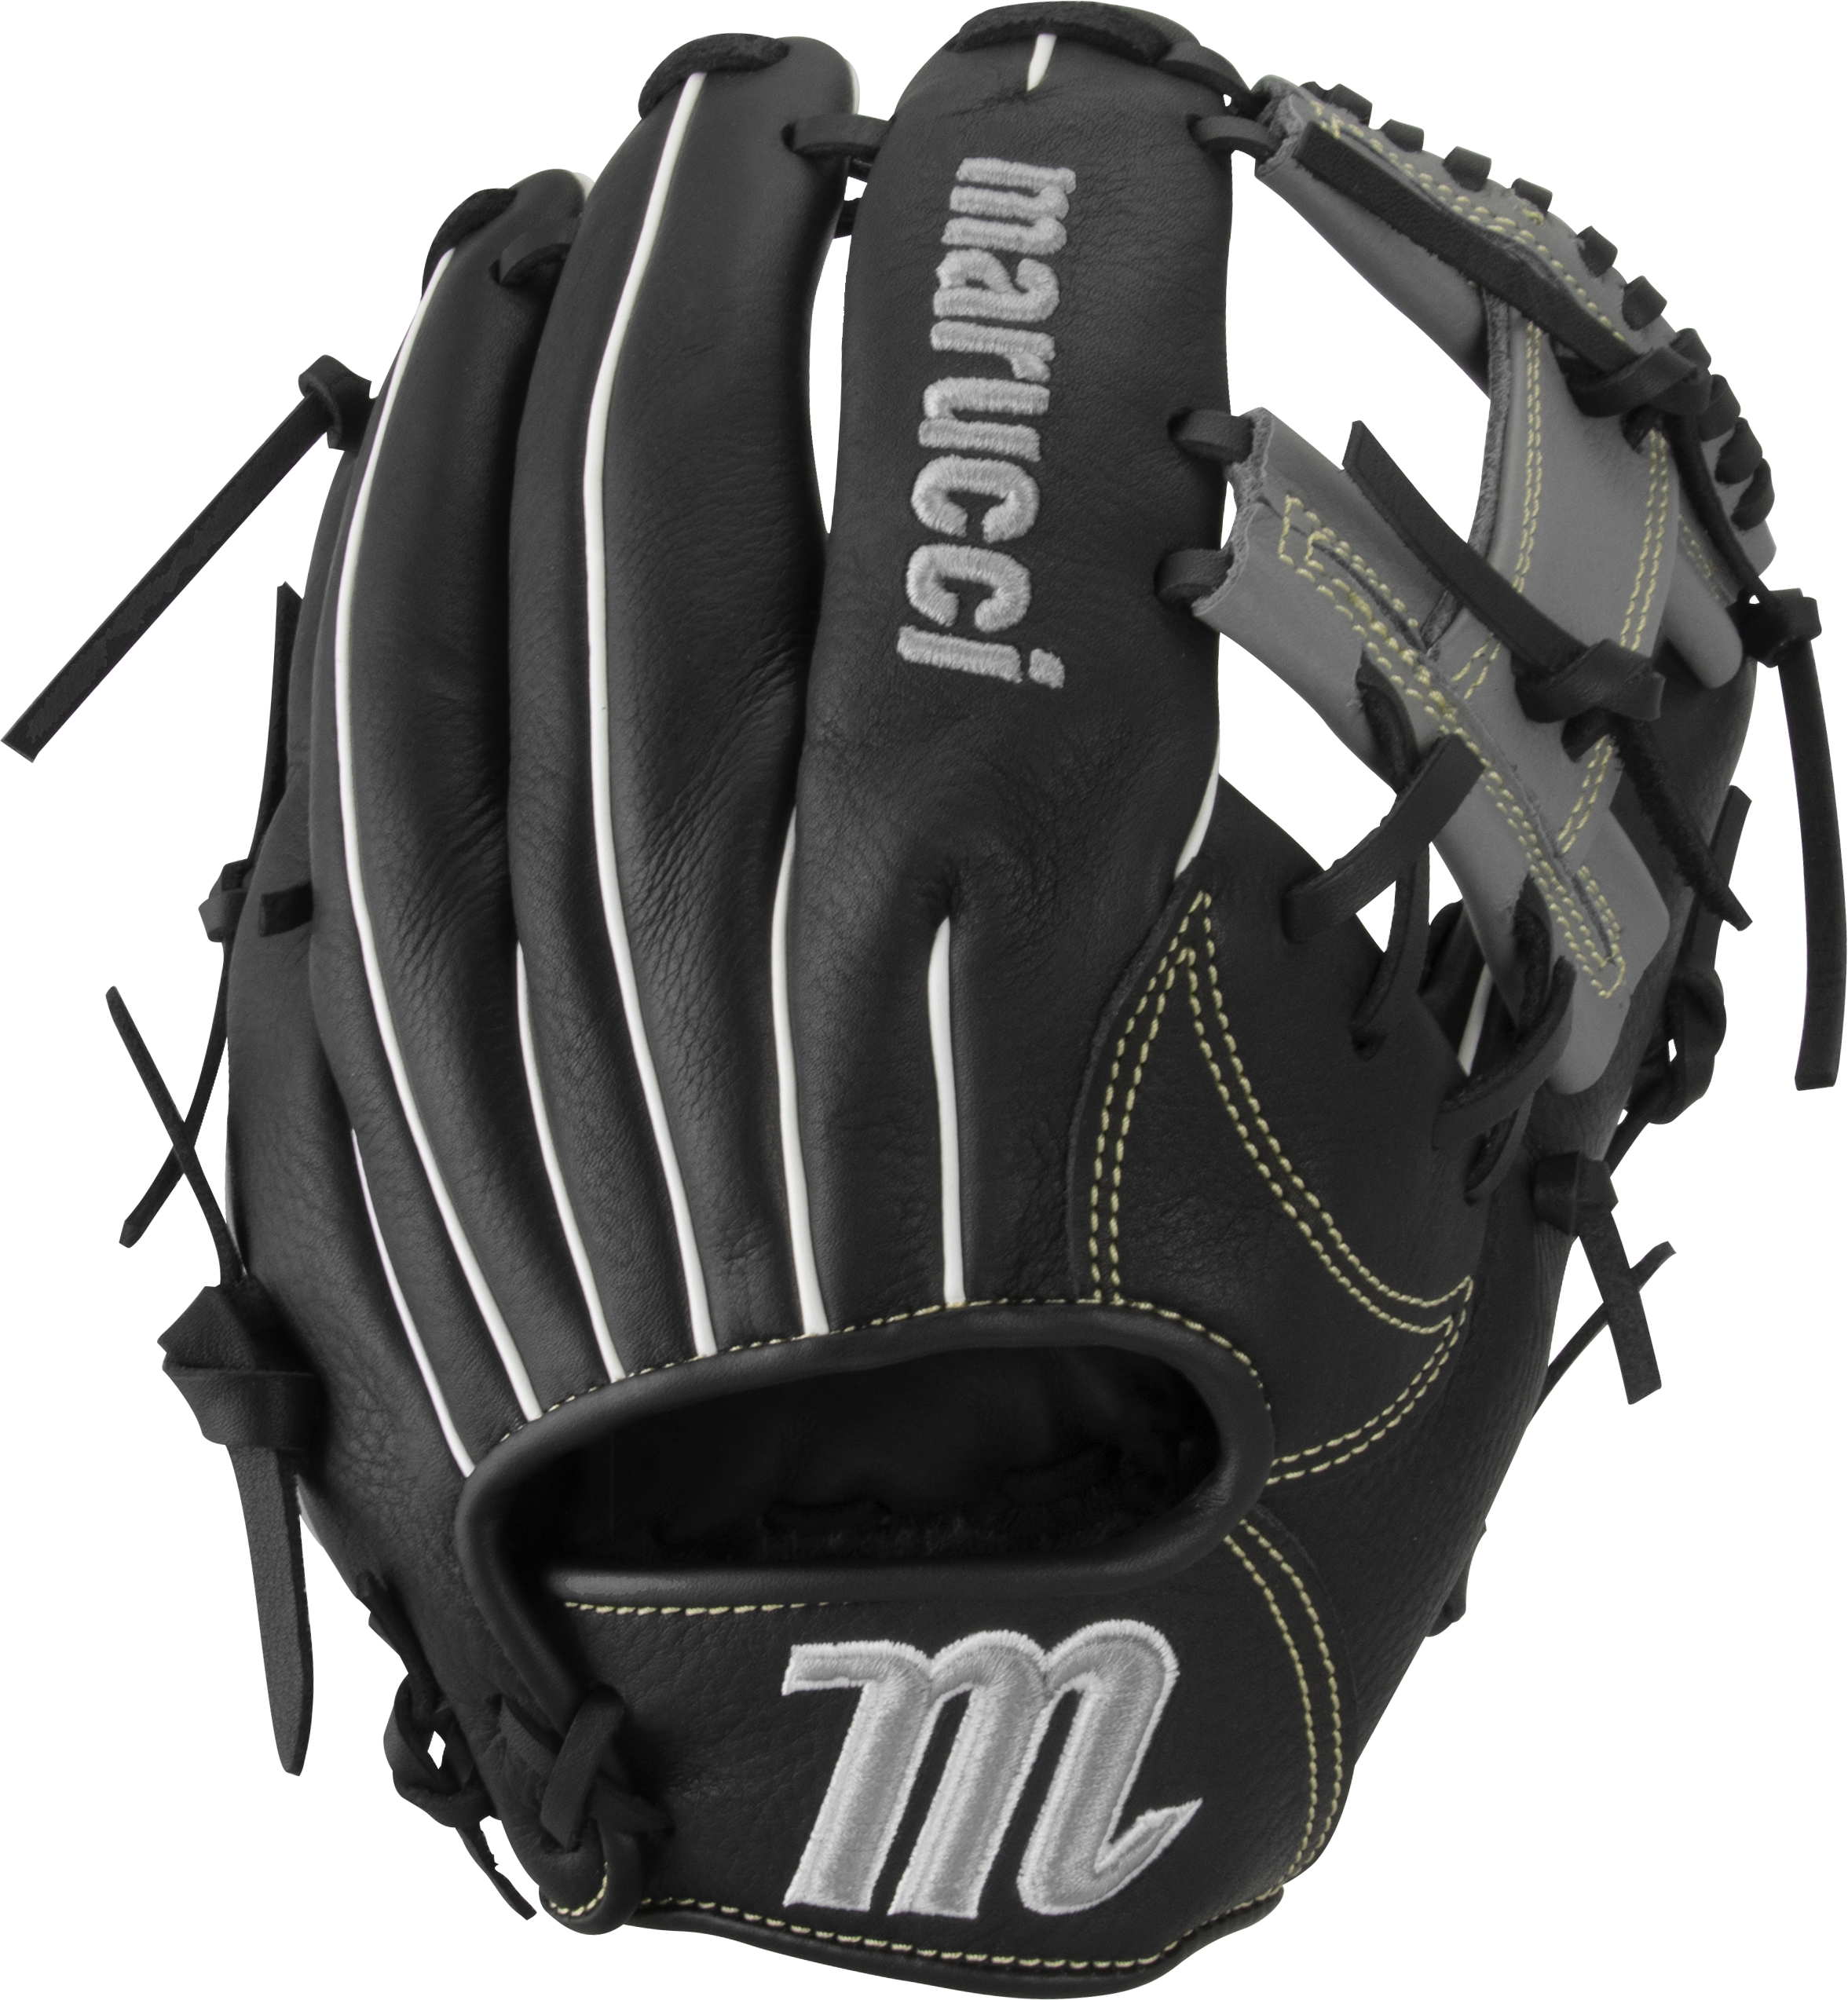 marucci-oxbow-ox115-baseball-glove-11-5-i-web-right-hand-throw MFGOX115-BKGY-RightHandThrow Marucci 849817099469 Full-grain cowhide leather shell Supple leather palm lining with added cushioning